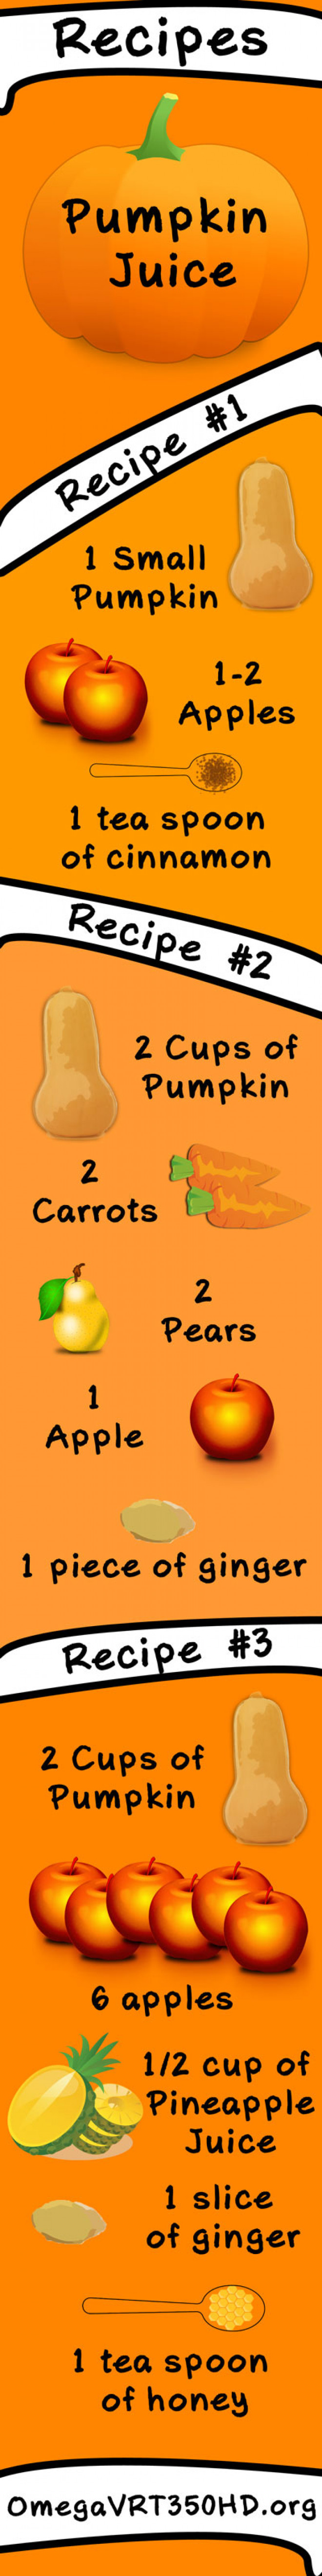 Pumped About Pumpkins: 3 Healthy and Delicious Pumpkin Juice Recipes - Infographic